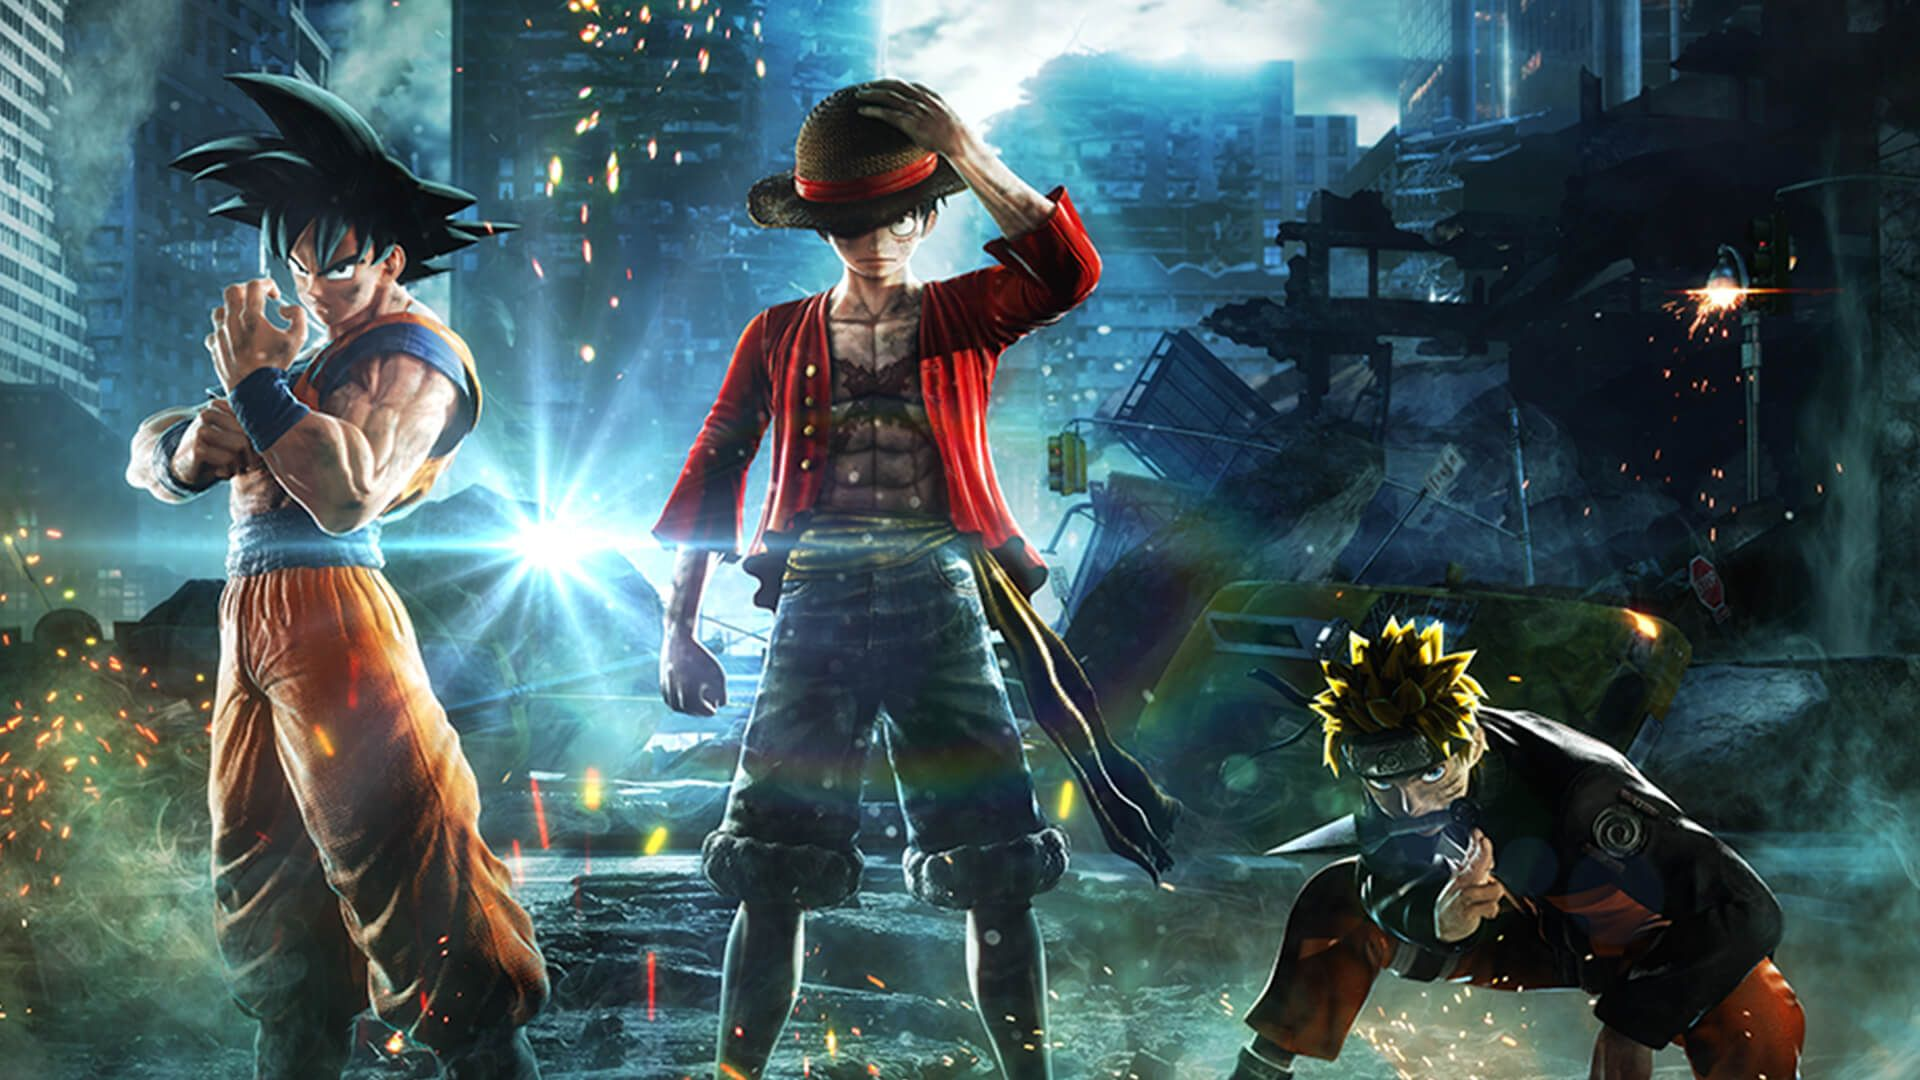 Jump force trailer promises the fighting game we never knew we always wanted